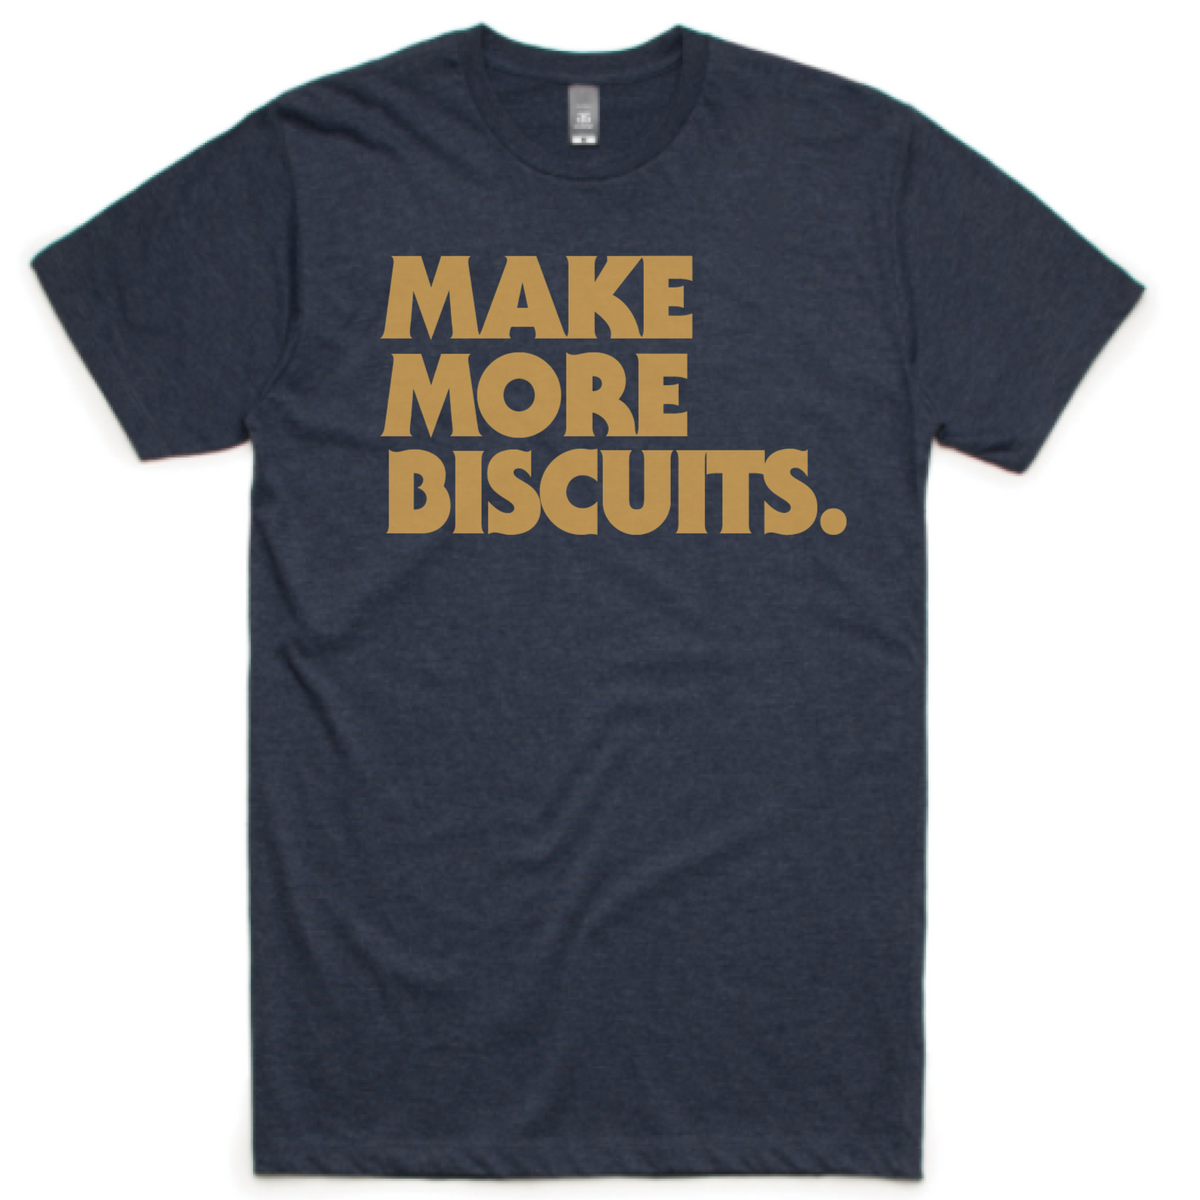 Make More Biscuits